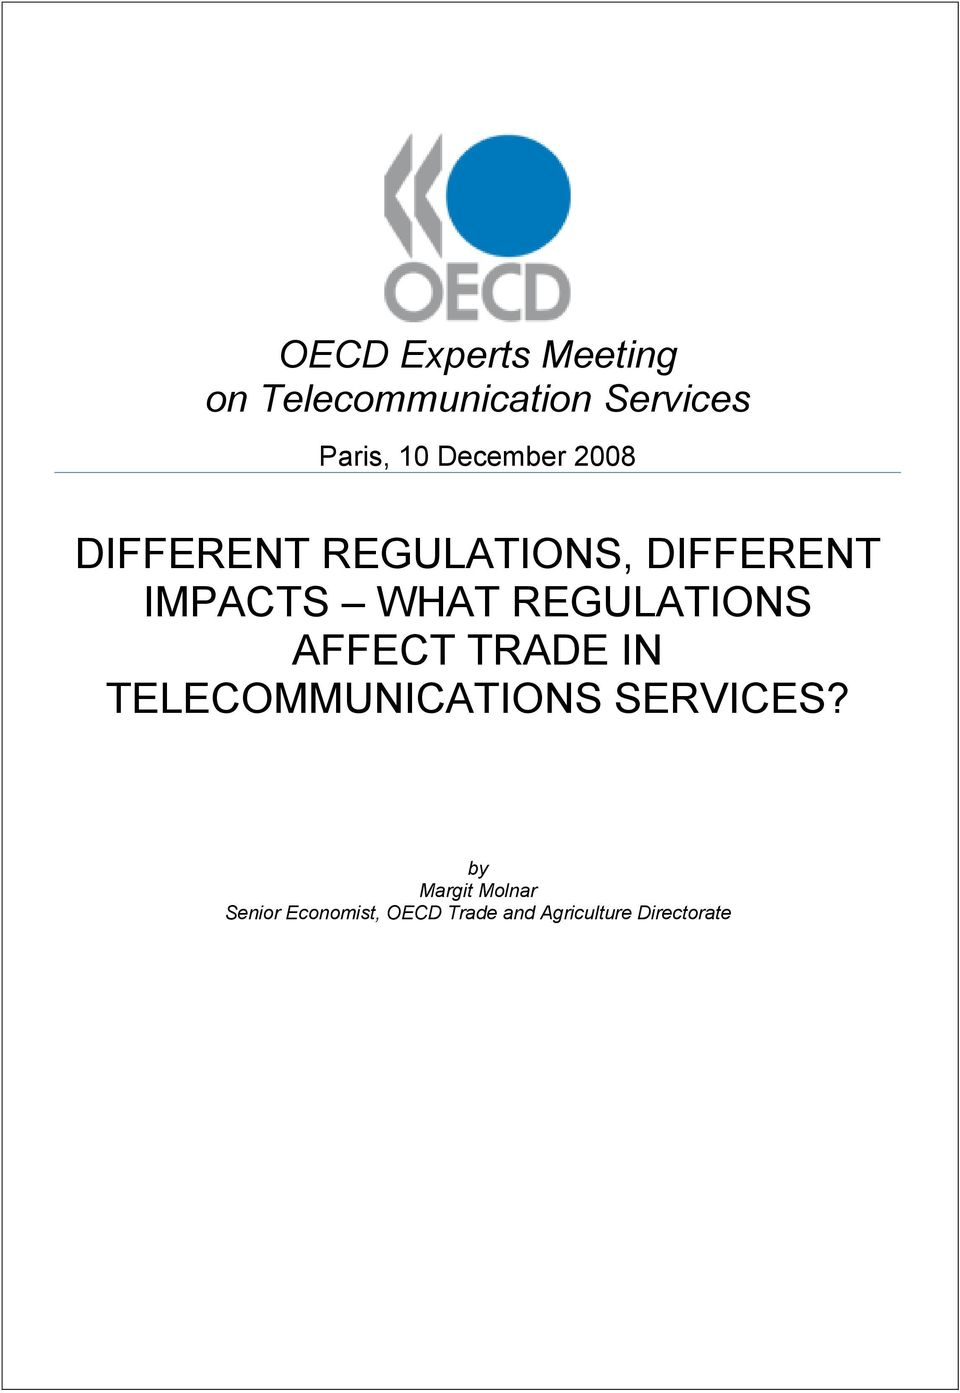 REGULATIONS AFFECT TRADE IN TELECOMMUNICATIONS SERVICES?